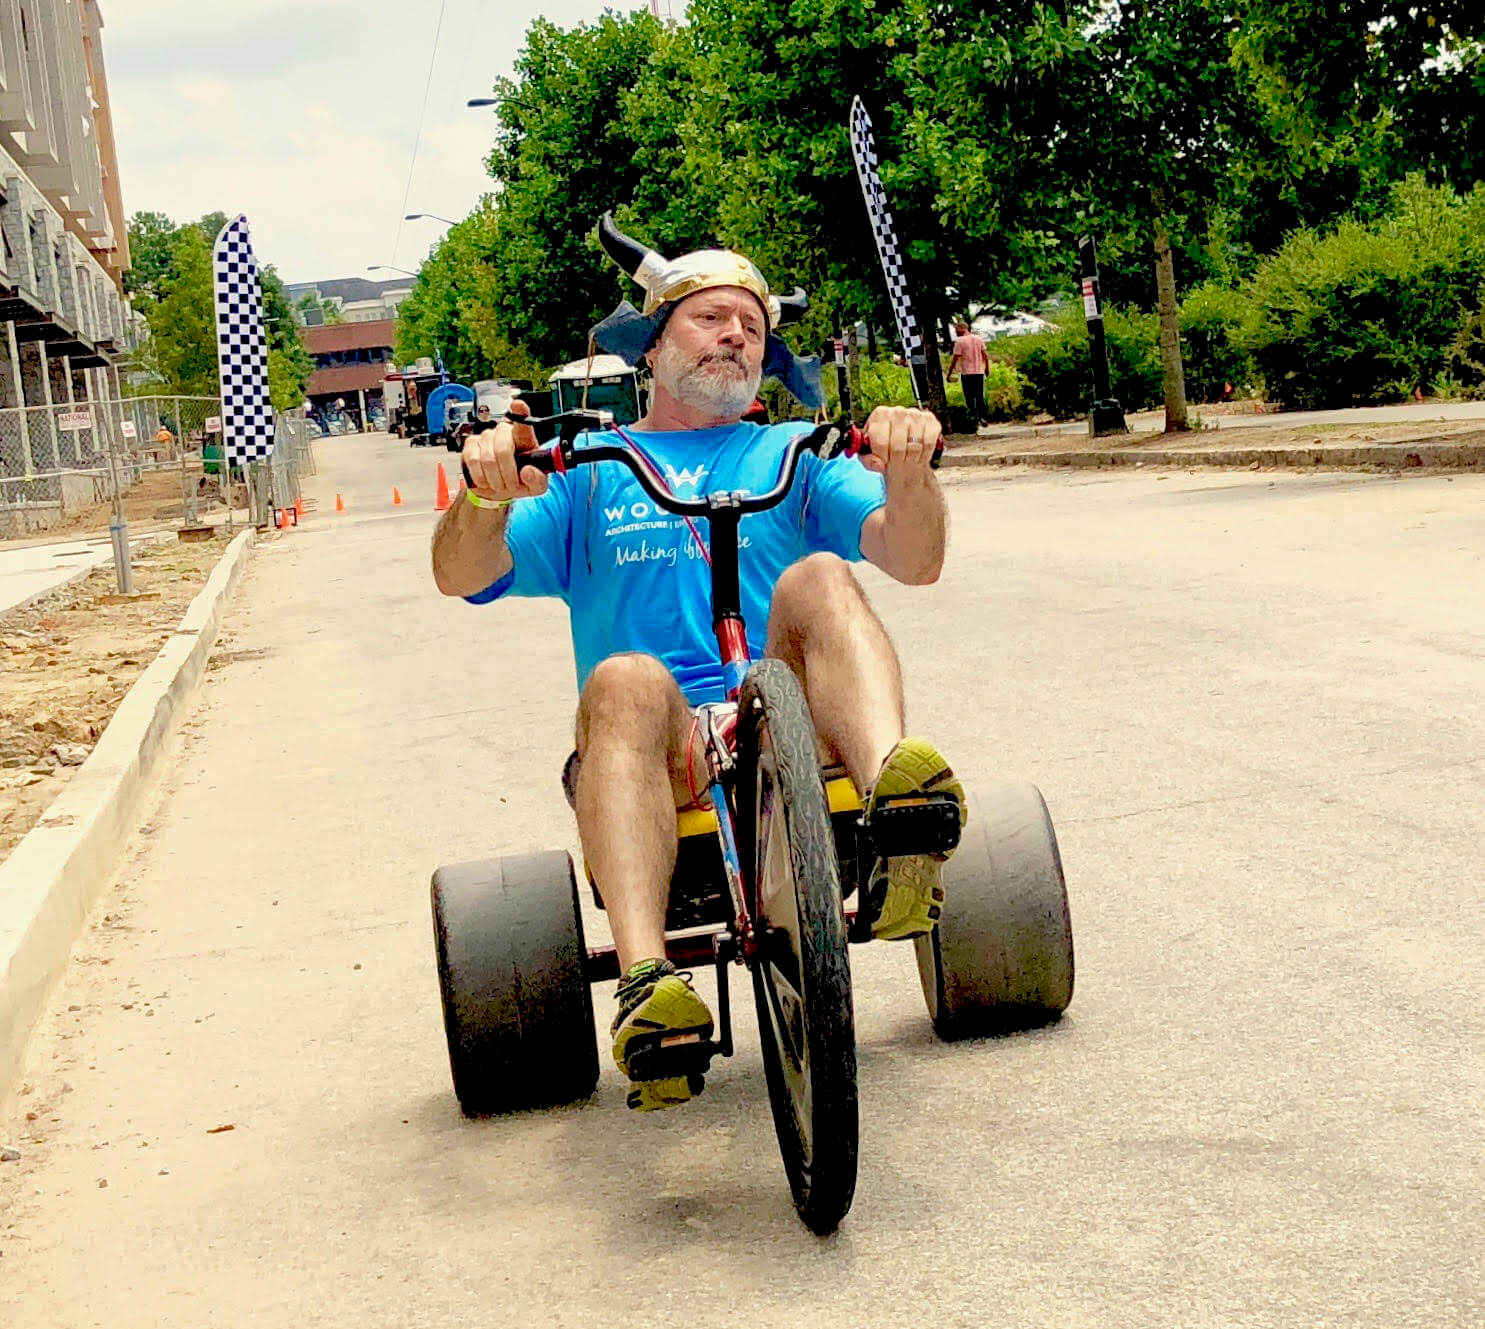 Team Building custom event with adult big wheel club , viking hats are optional